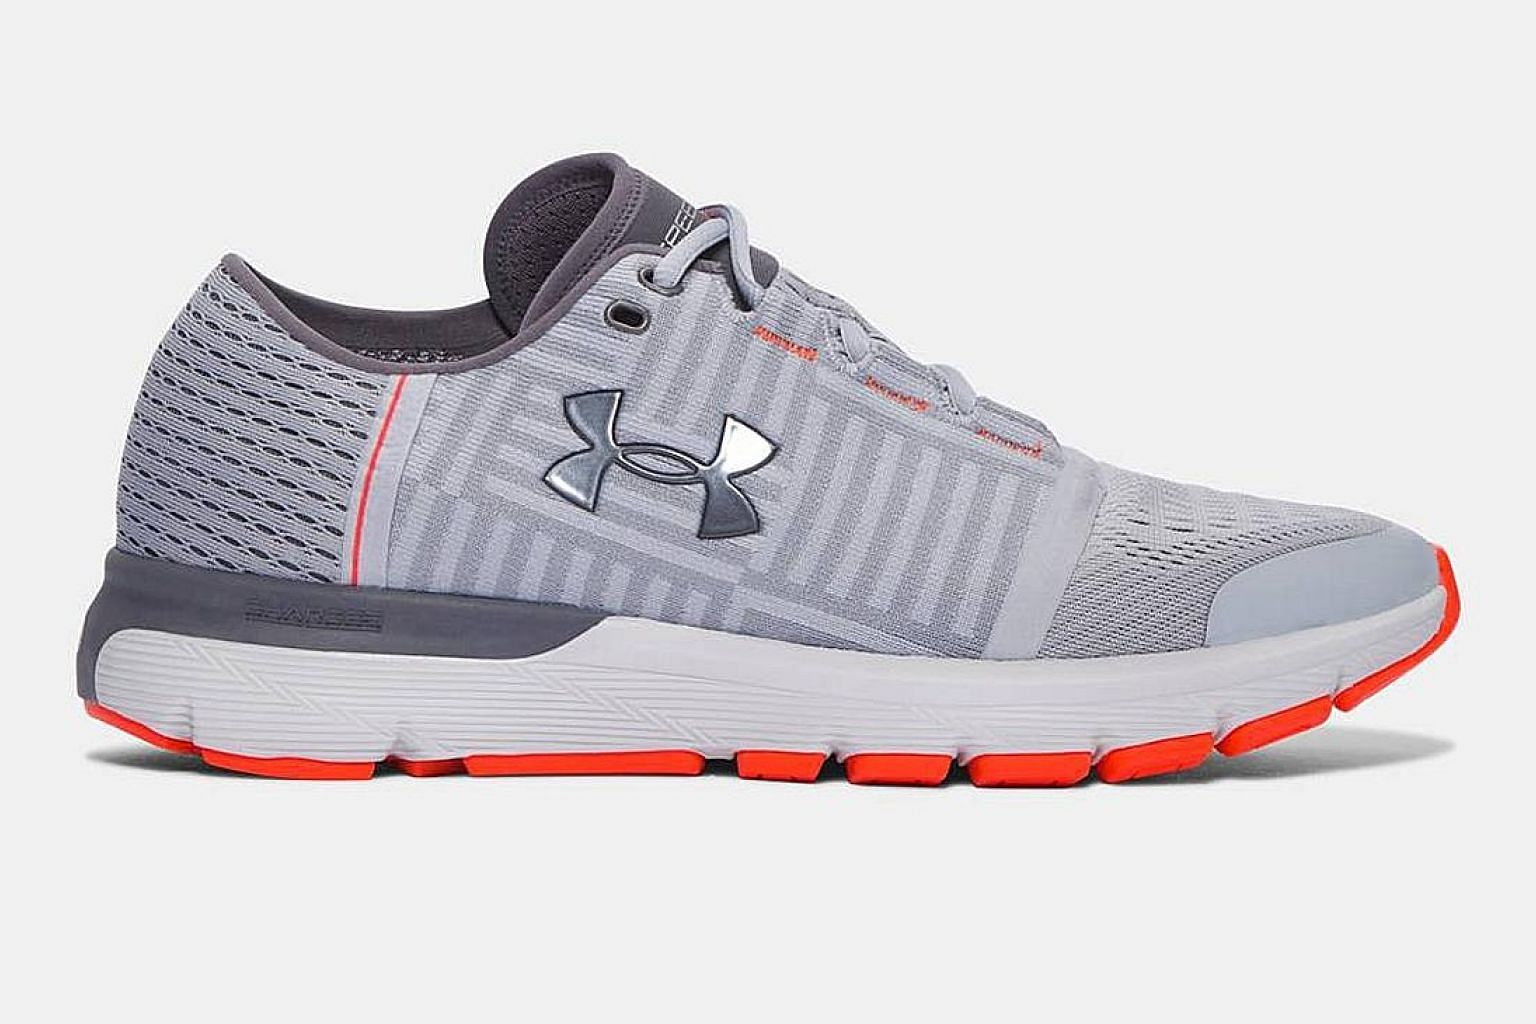 The Under Armour Speedform Gemini 3's embedded sockliner gives plenty of comfort. You don't need to wear socks with the shoes.